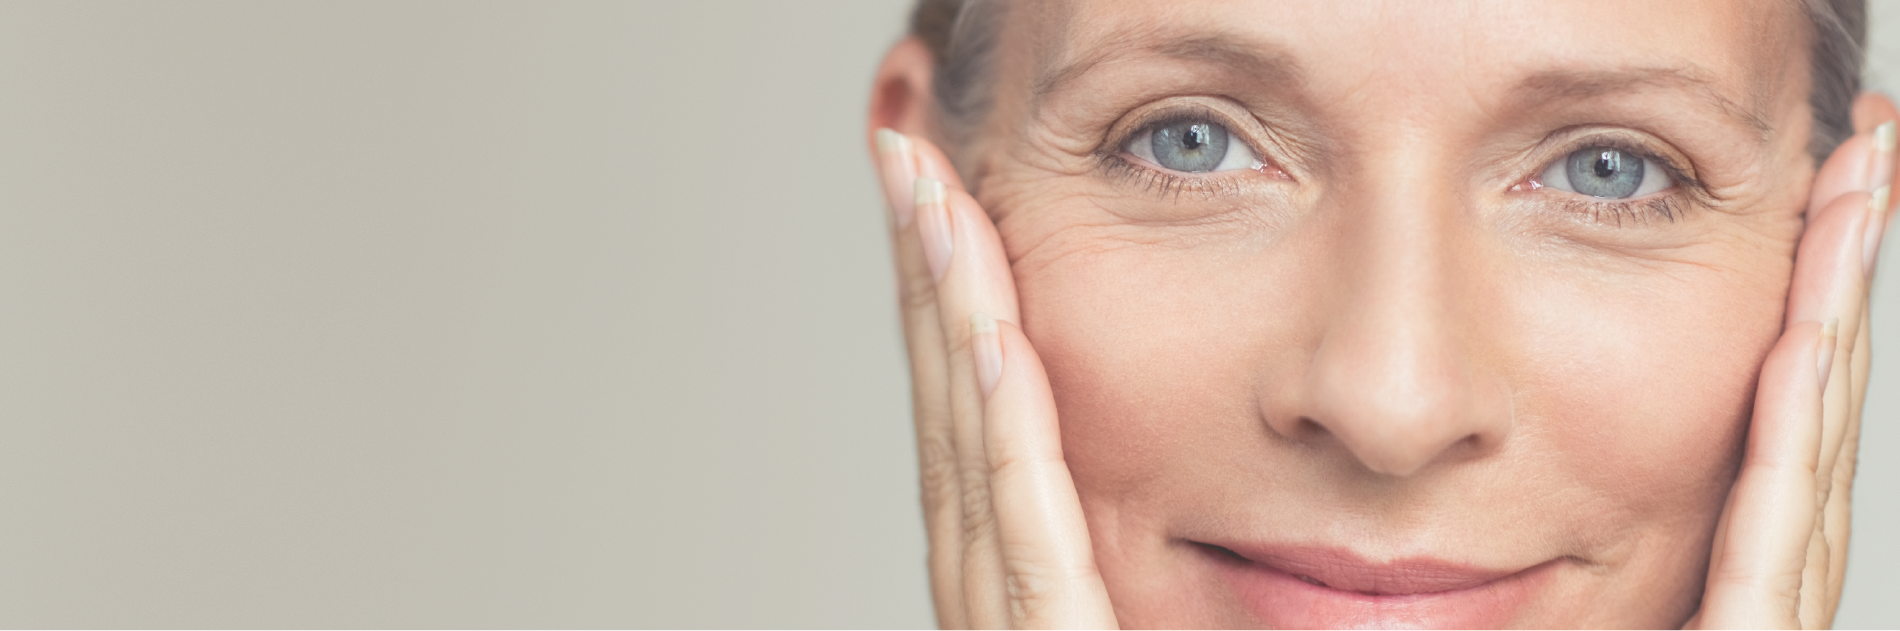 How to Promote Healthy Skin Aging